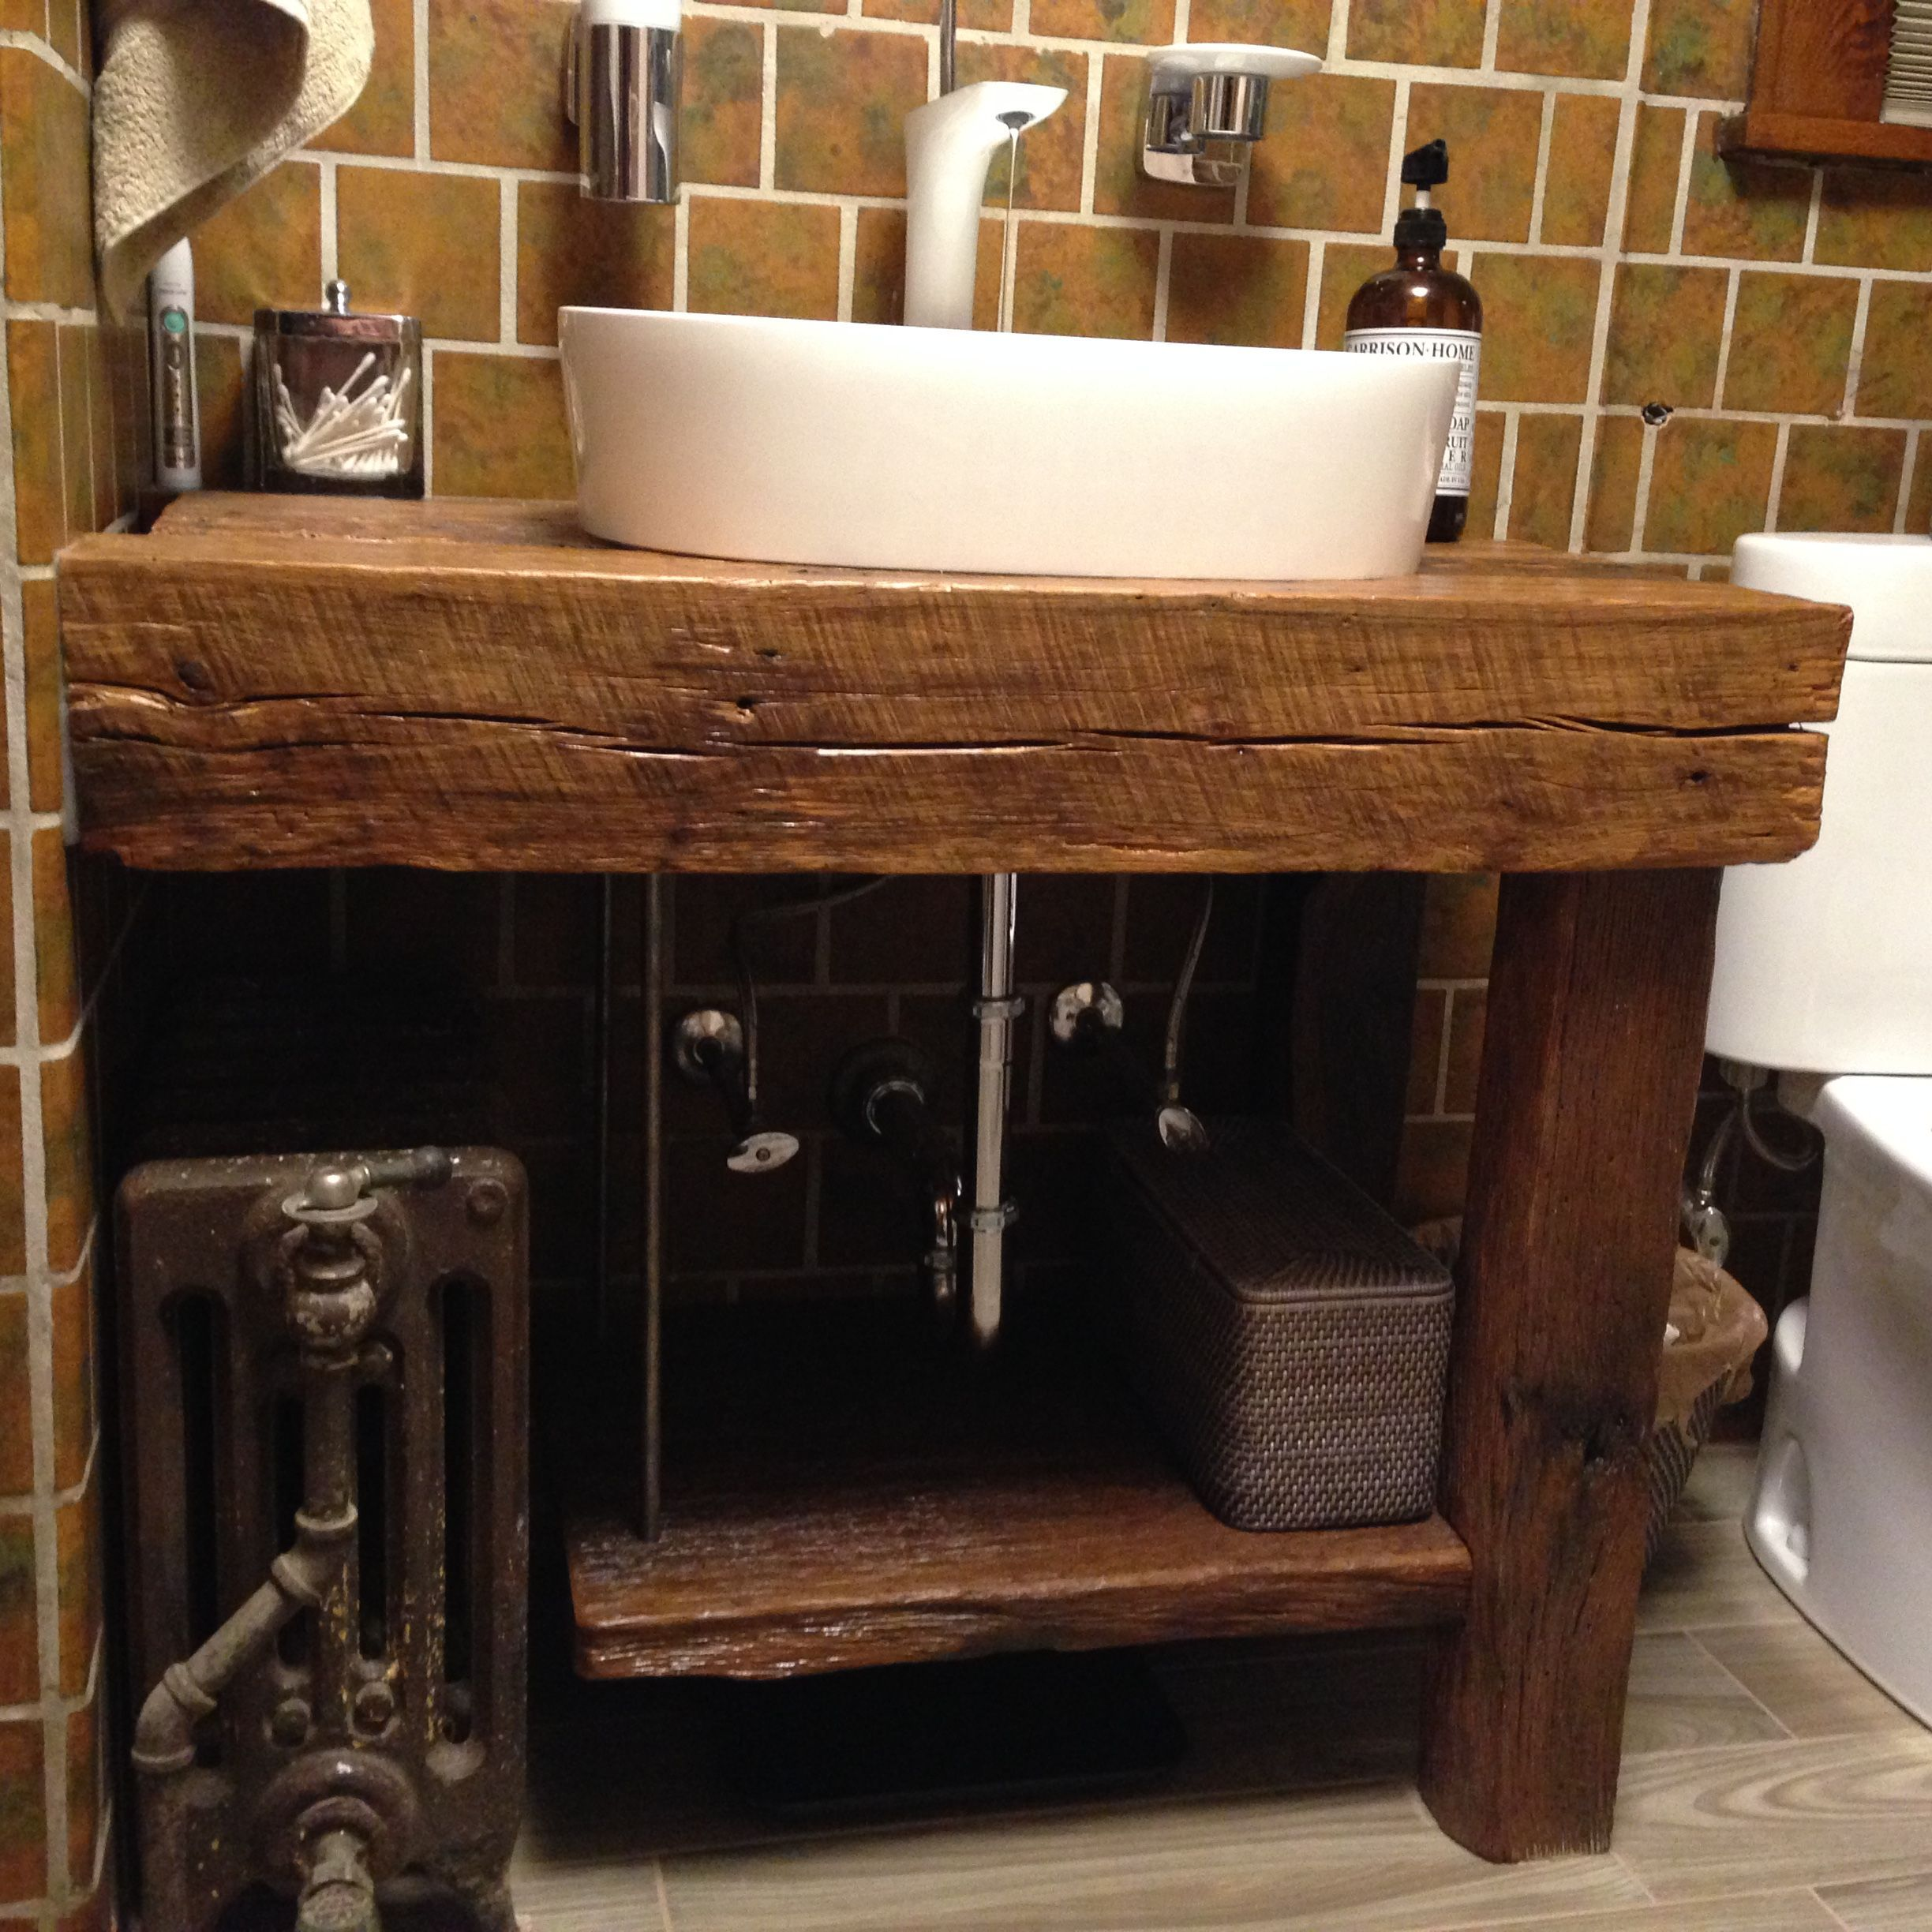 Hand Crafted Rustic Bath Vanity Reclaimed Barnwood By Intelligent Design Woodwork